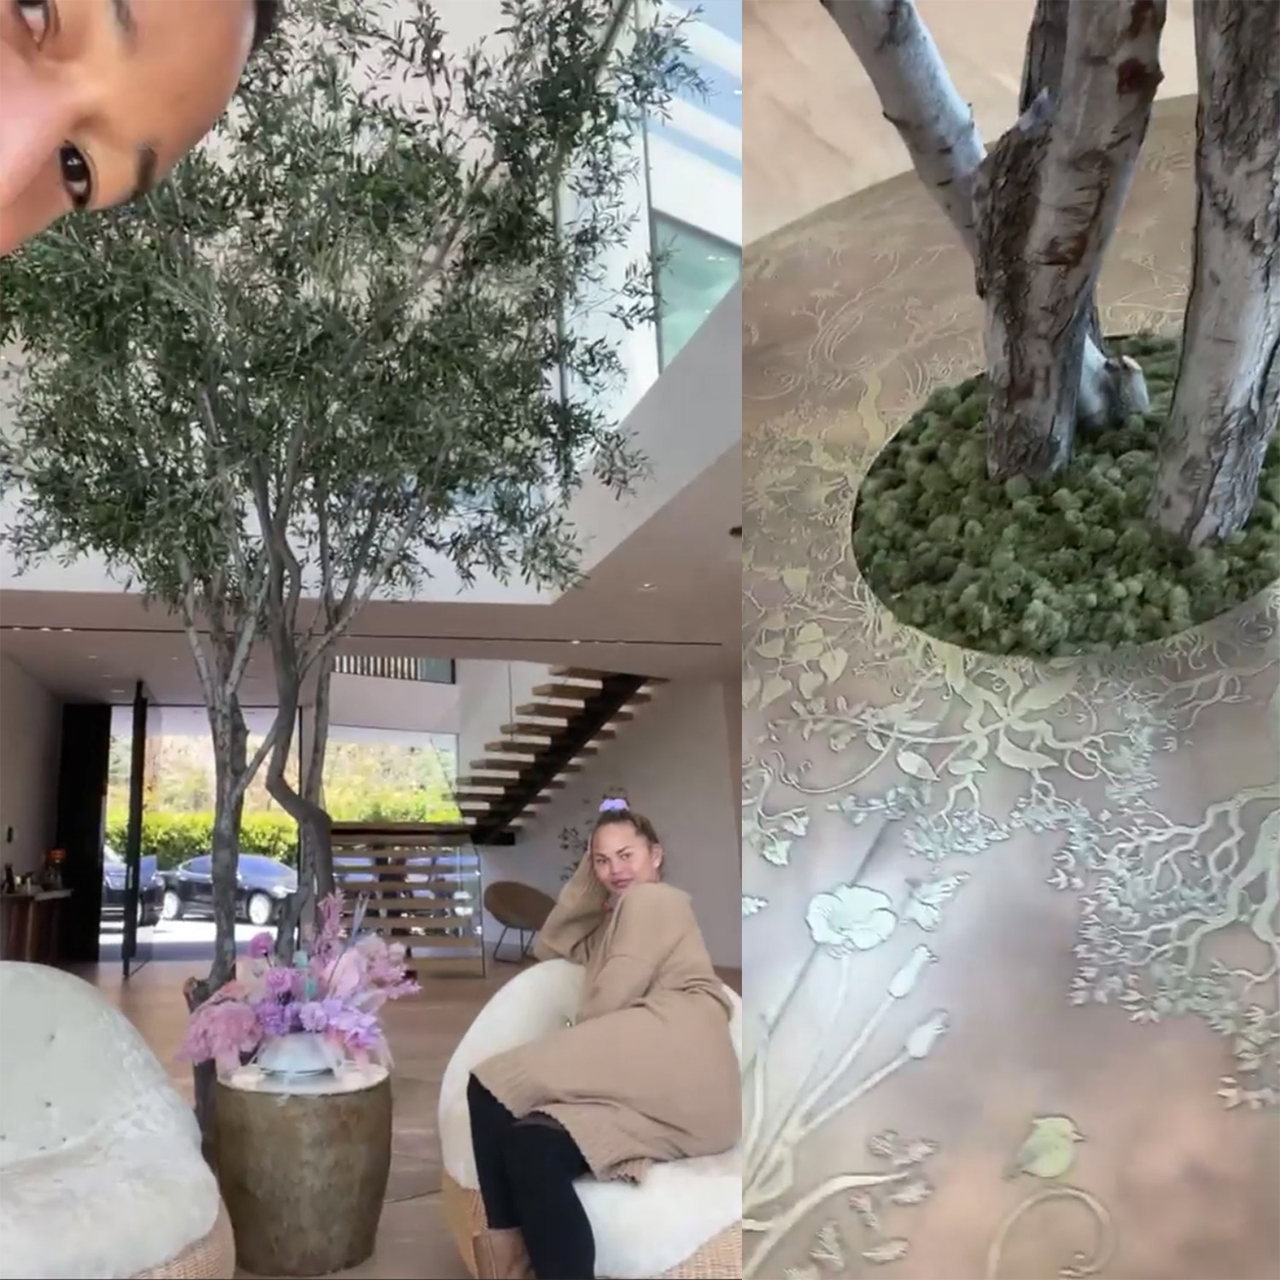 Screenshots from Chrissy's Instragram live where they showed off the tree growing in their house as a tribute to their son Jack.